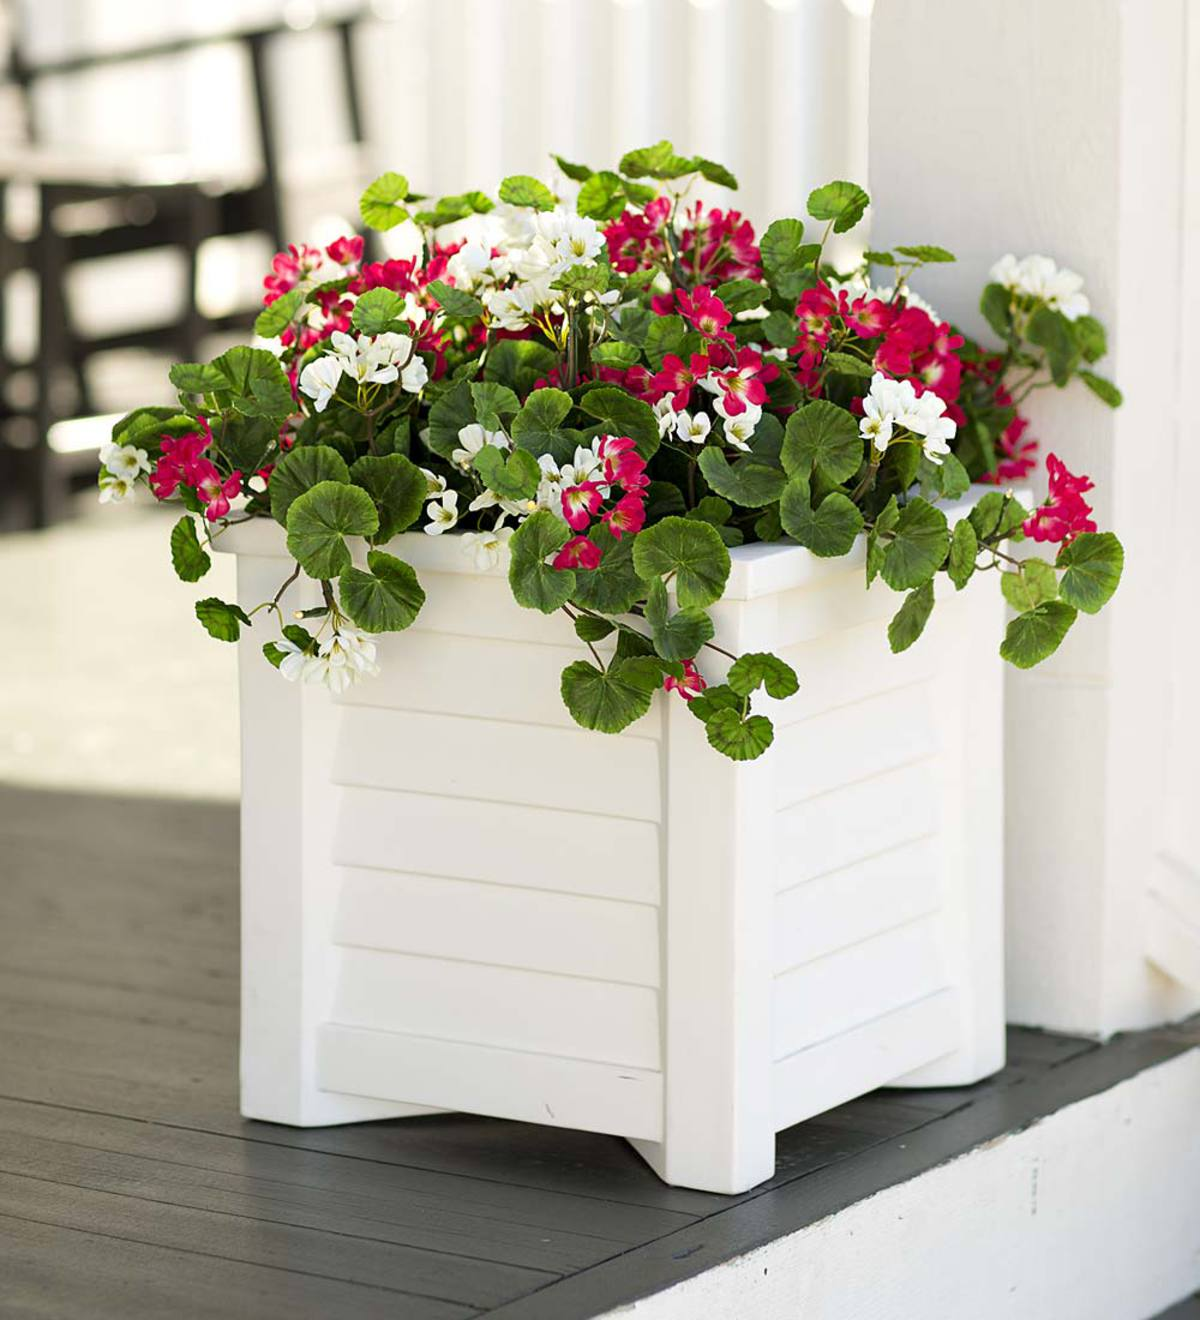 Faux Red and White Geranium Urn/Planter Filler